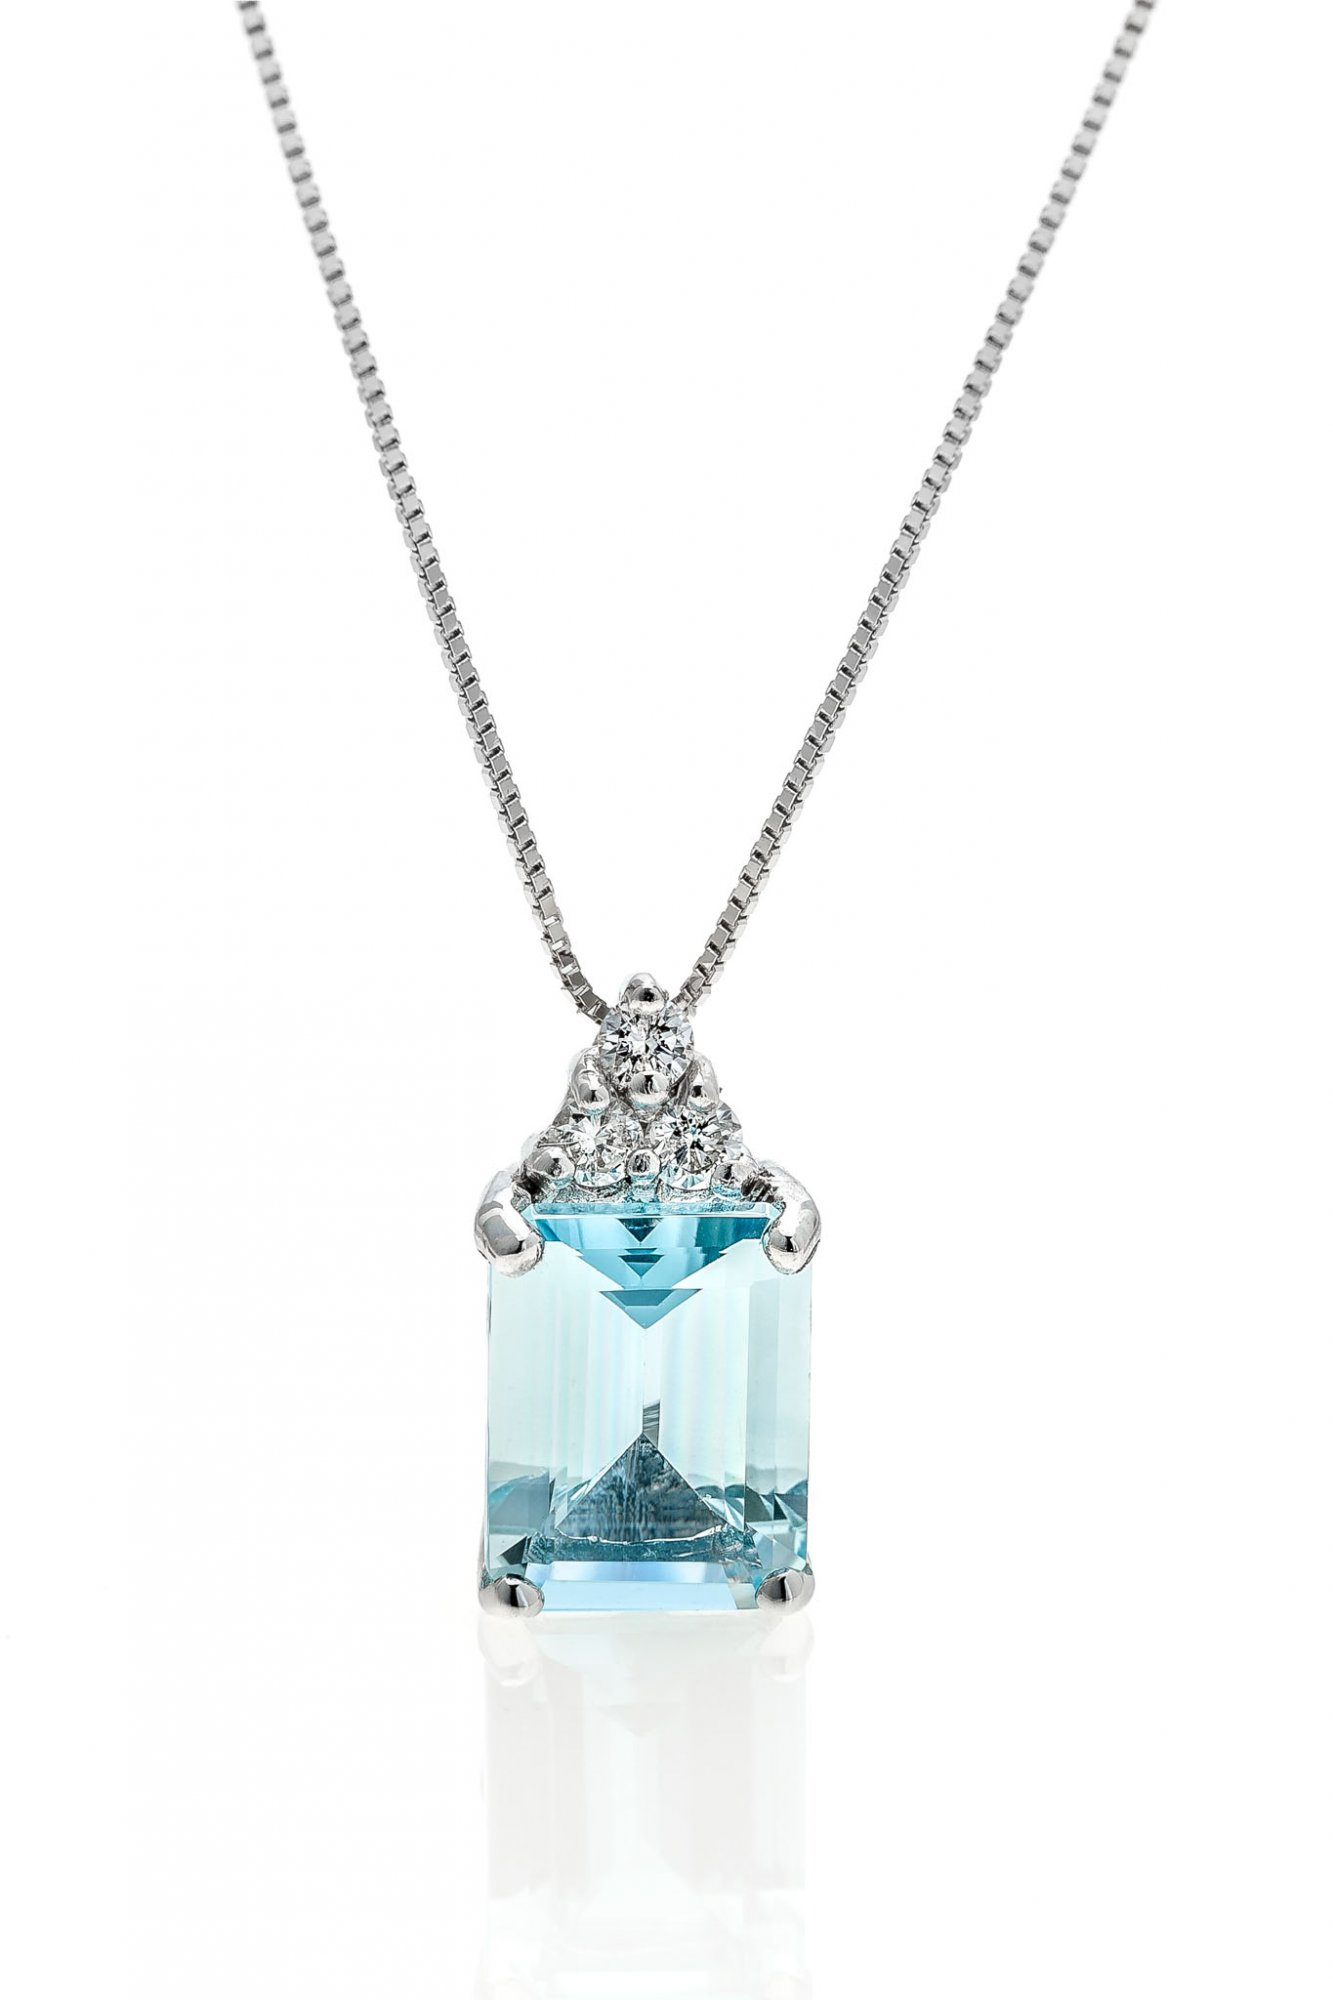 18 KT white gold necklace with natural aquamarine  and natural round brilliant cut diamonds